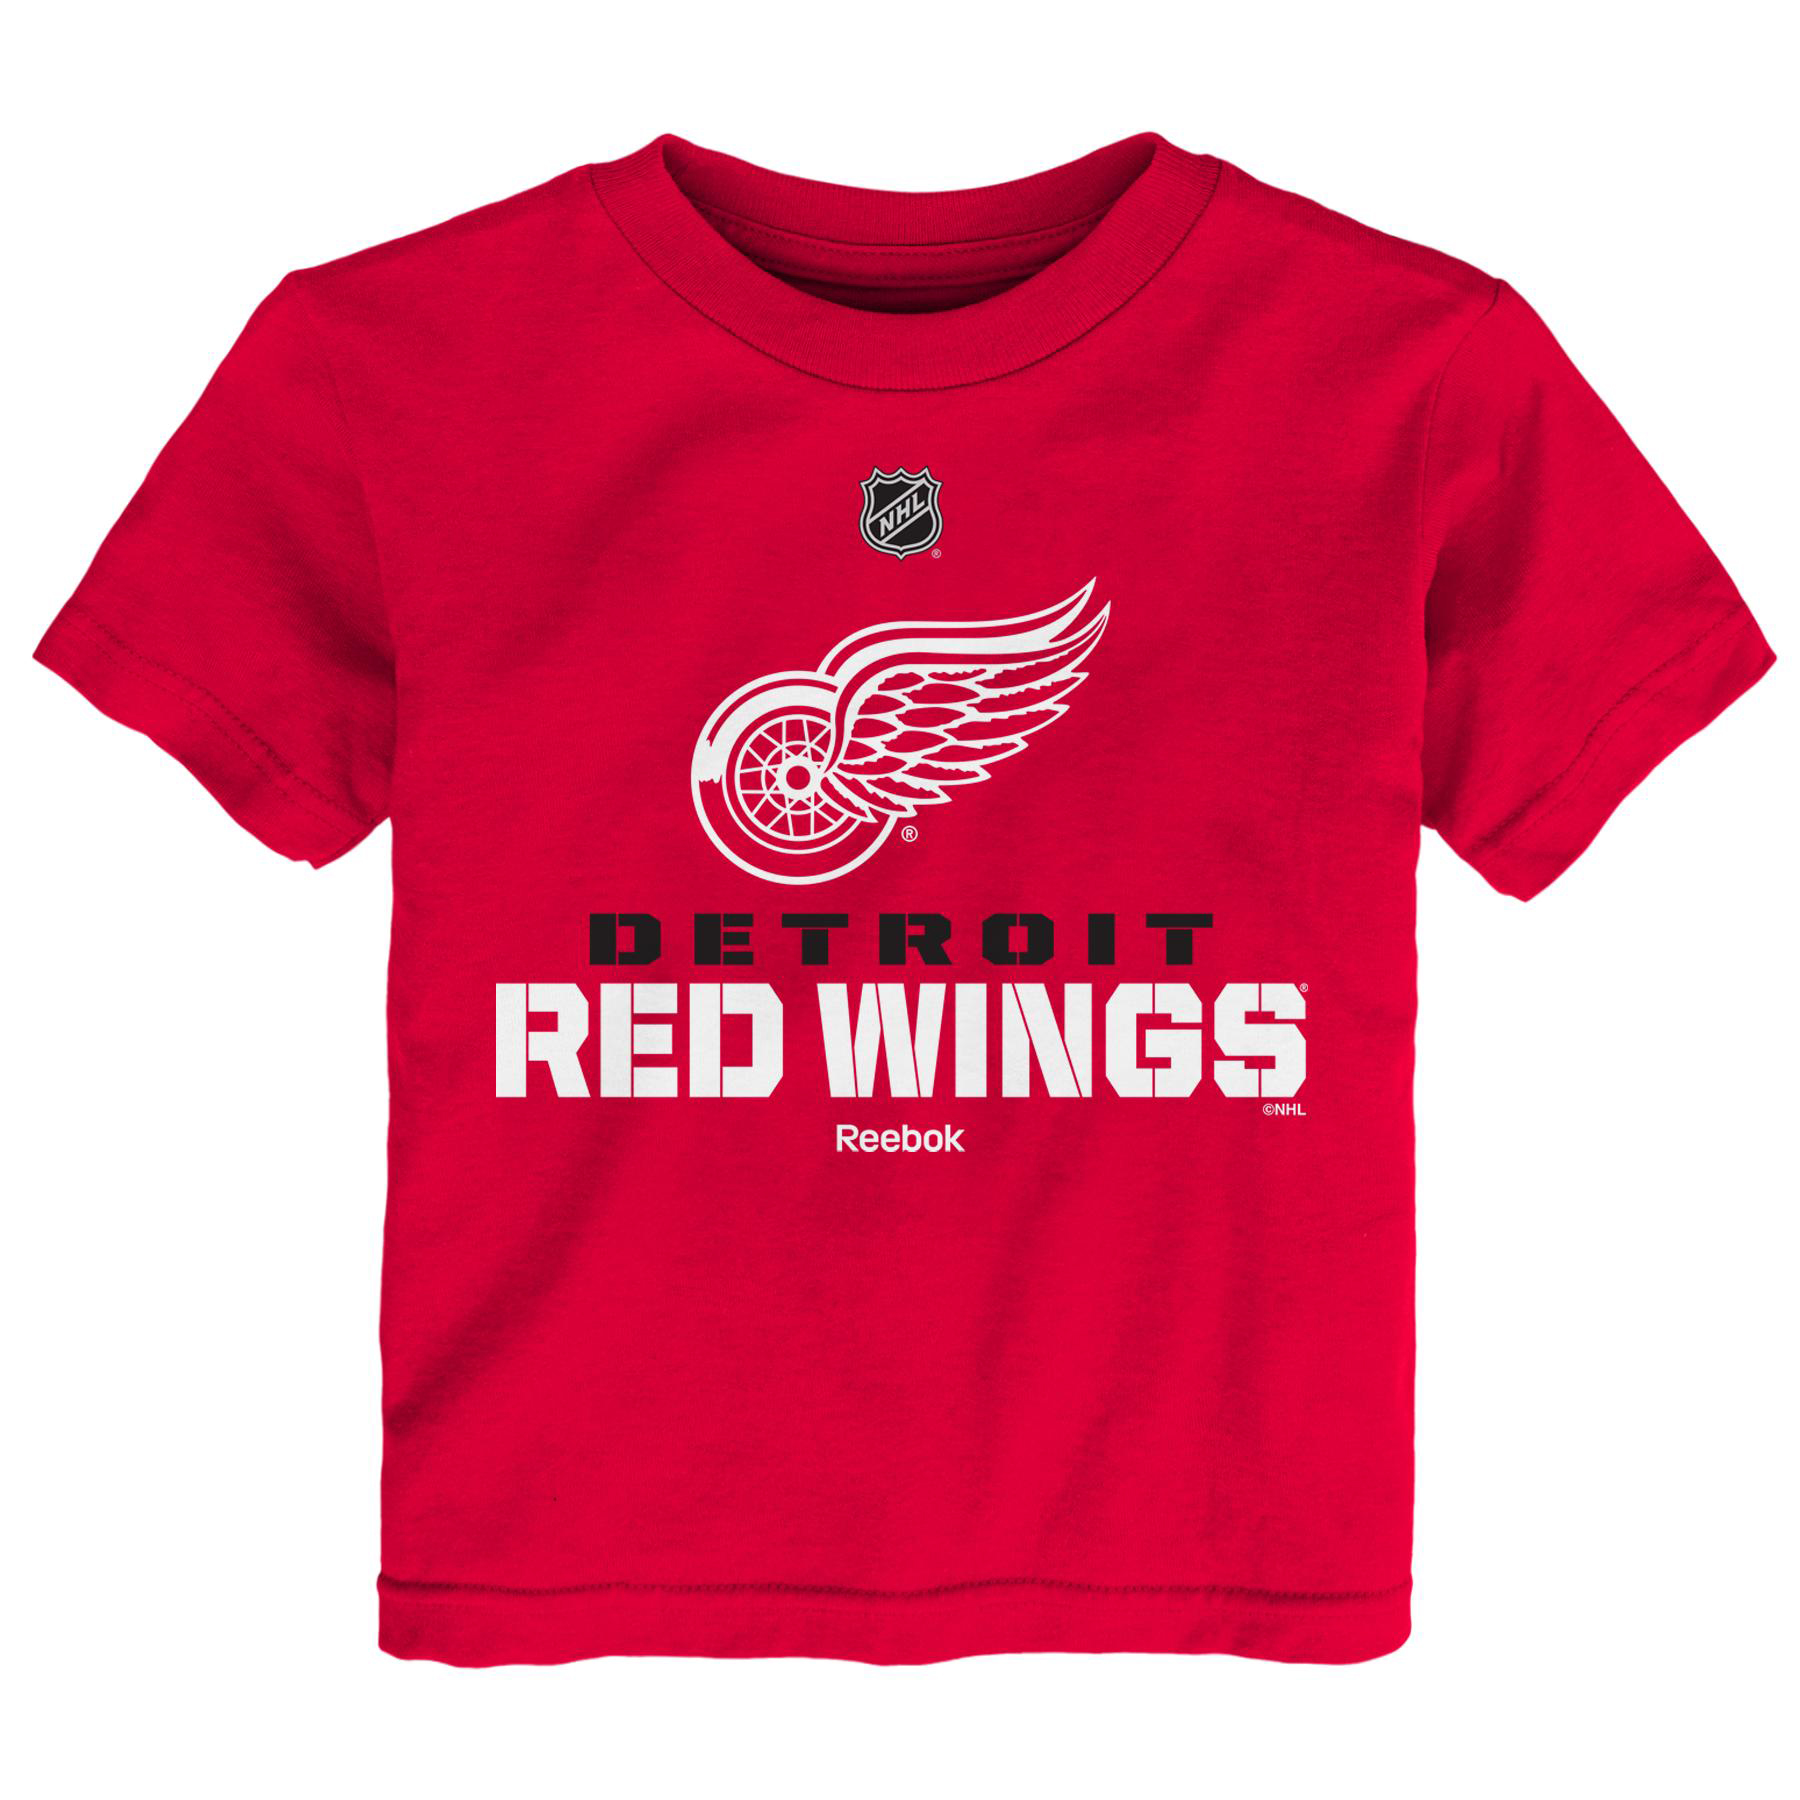 Detroit Red Wings Reebok Youth Clean Cut T-Shirt - Red